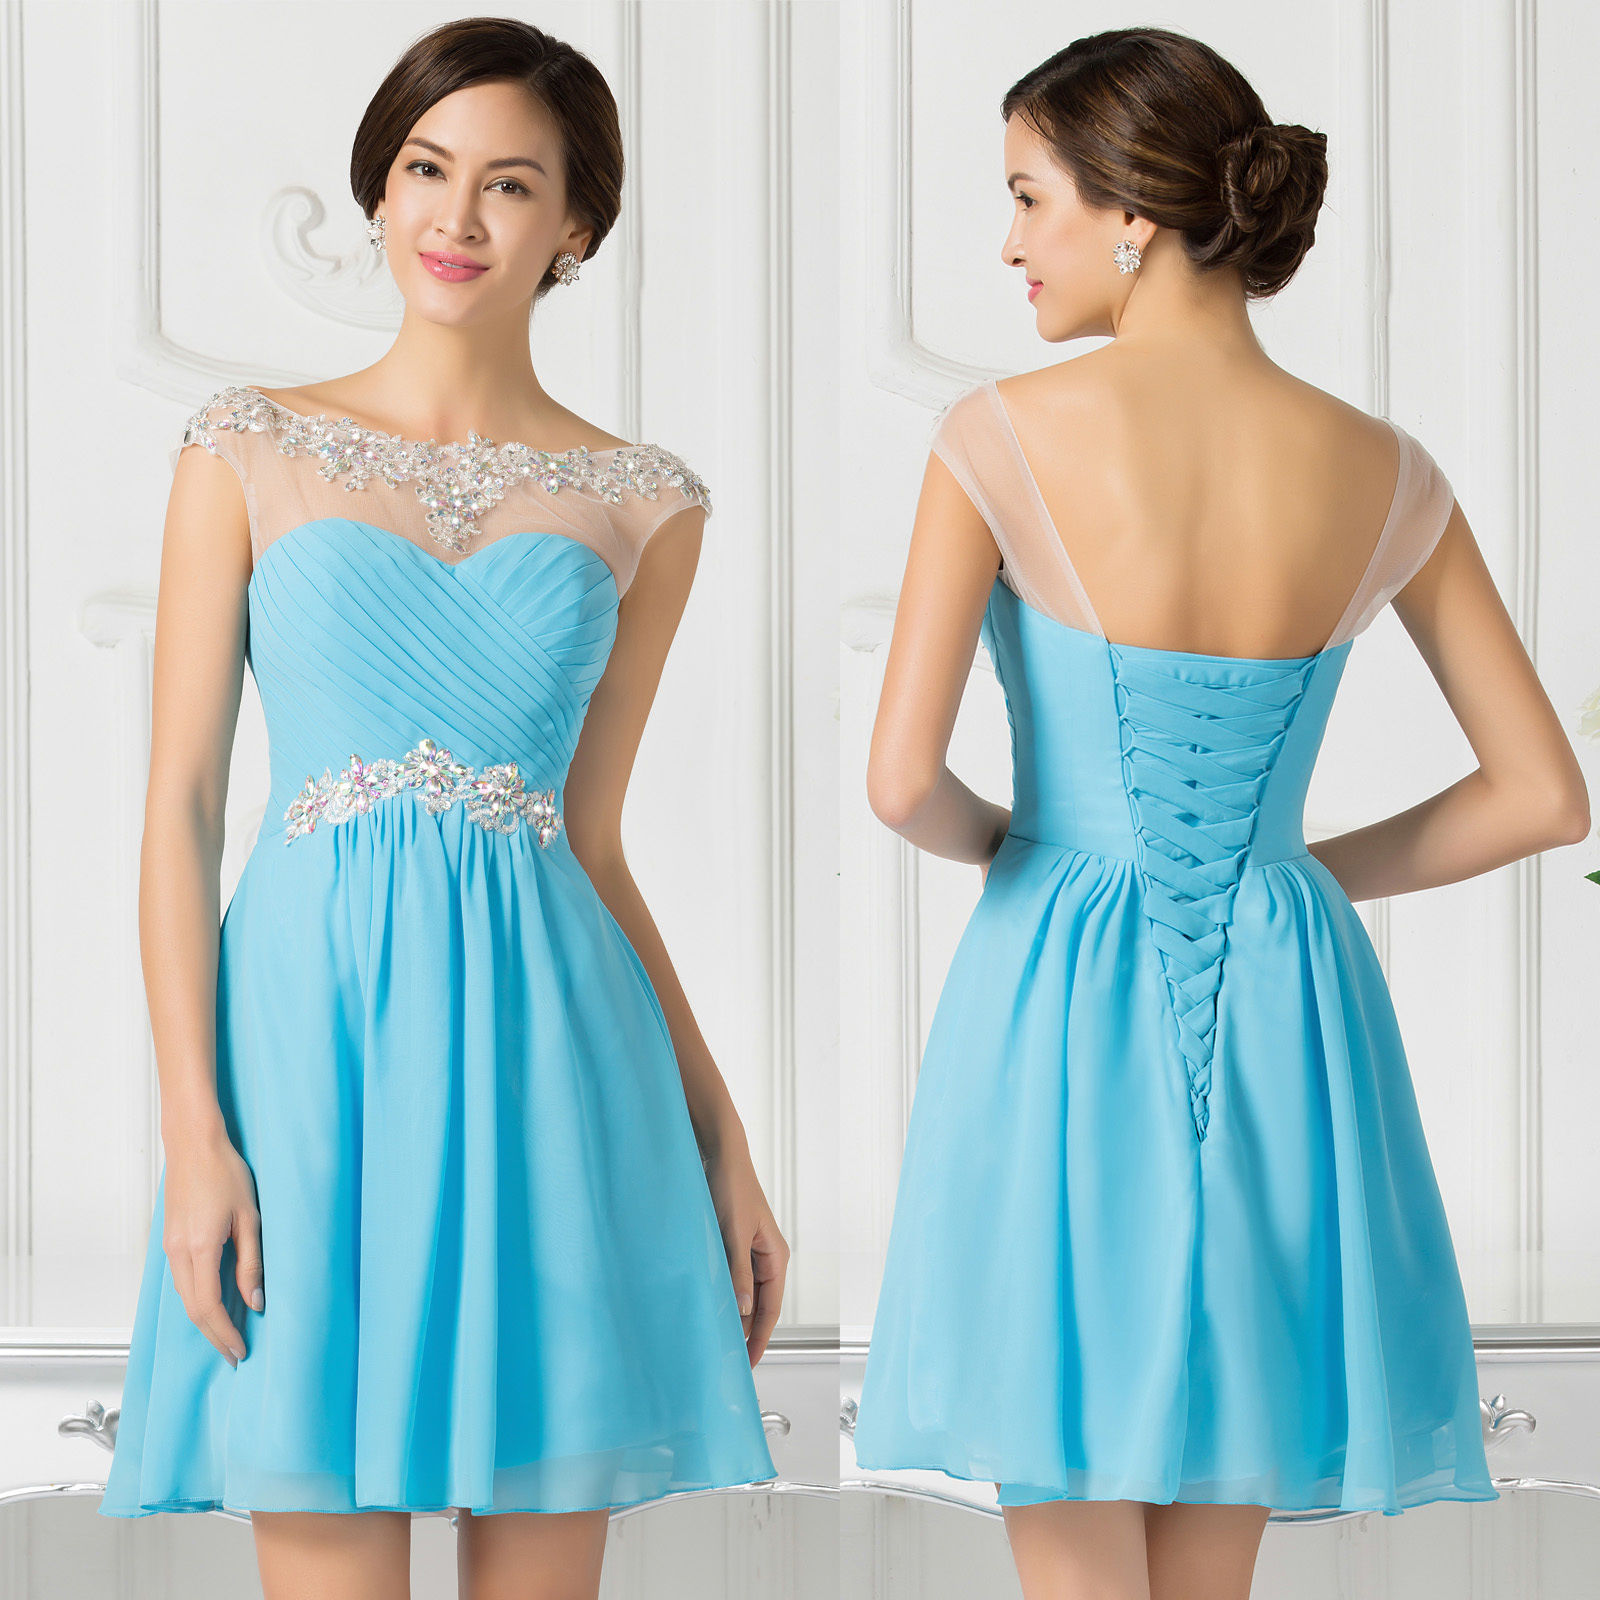 2015 Sexy Beading Short Dresses Bridesmaid Evening Party Prom Gown ...